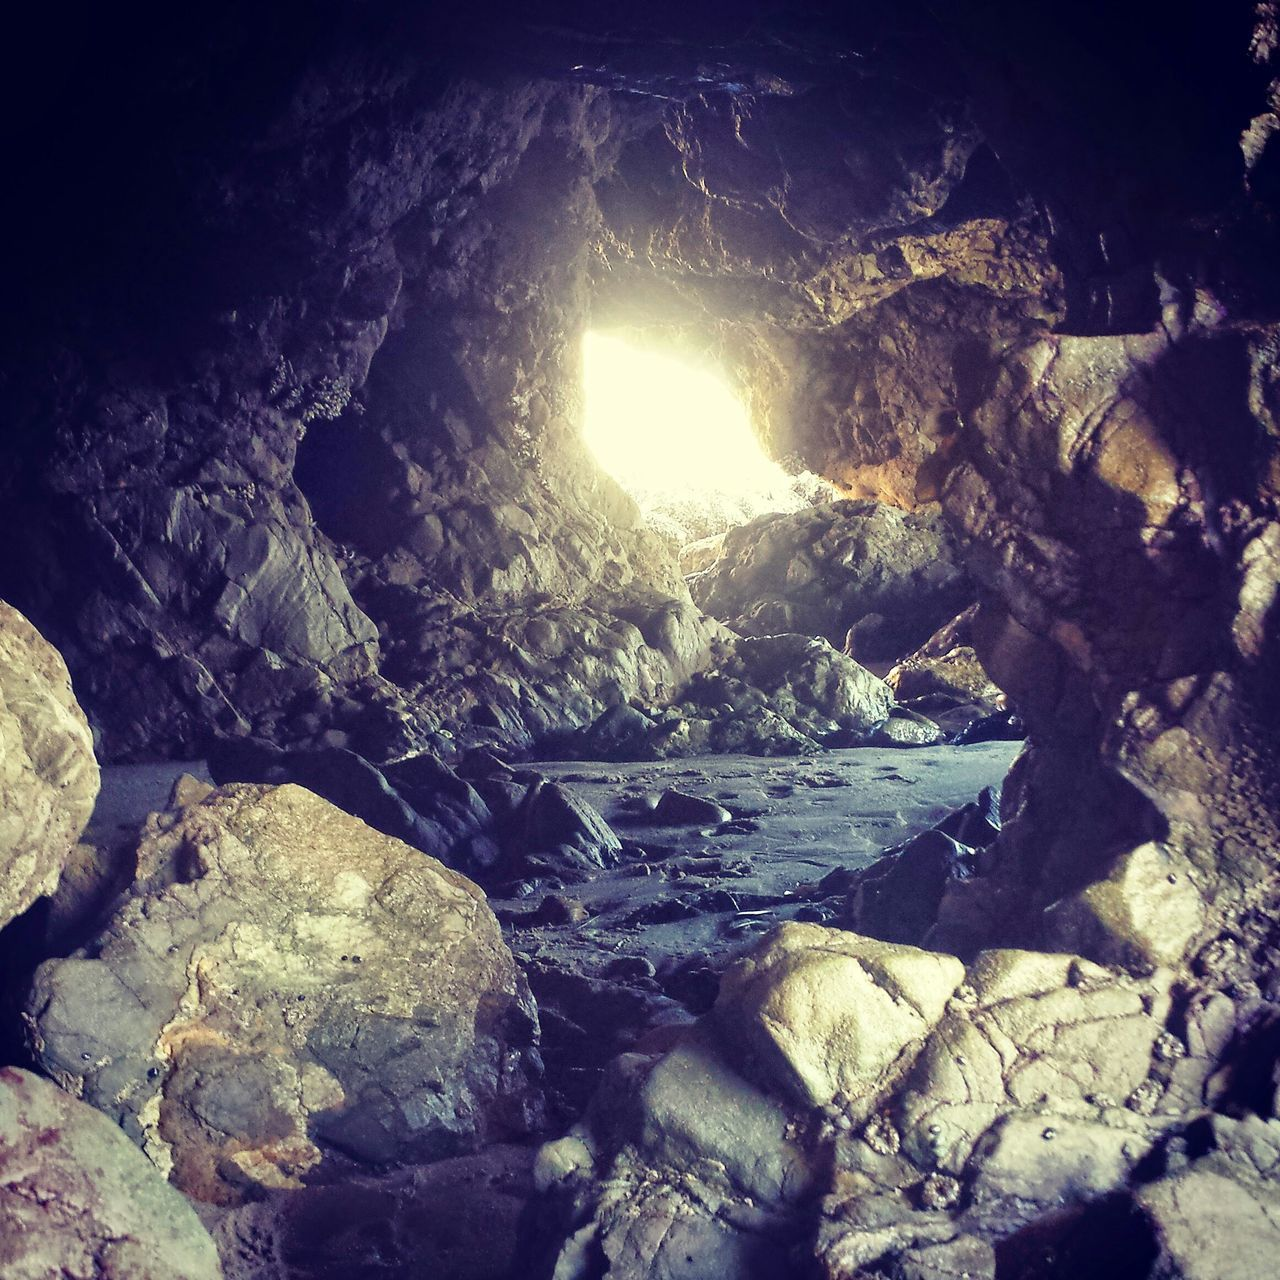 Leo carrillo Beach Cave Natures Diversities